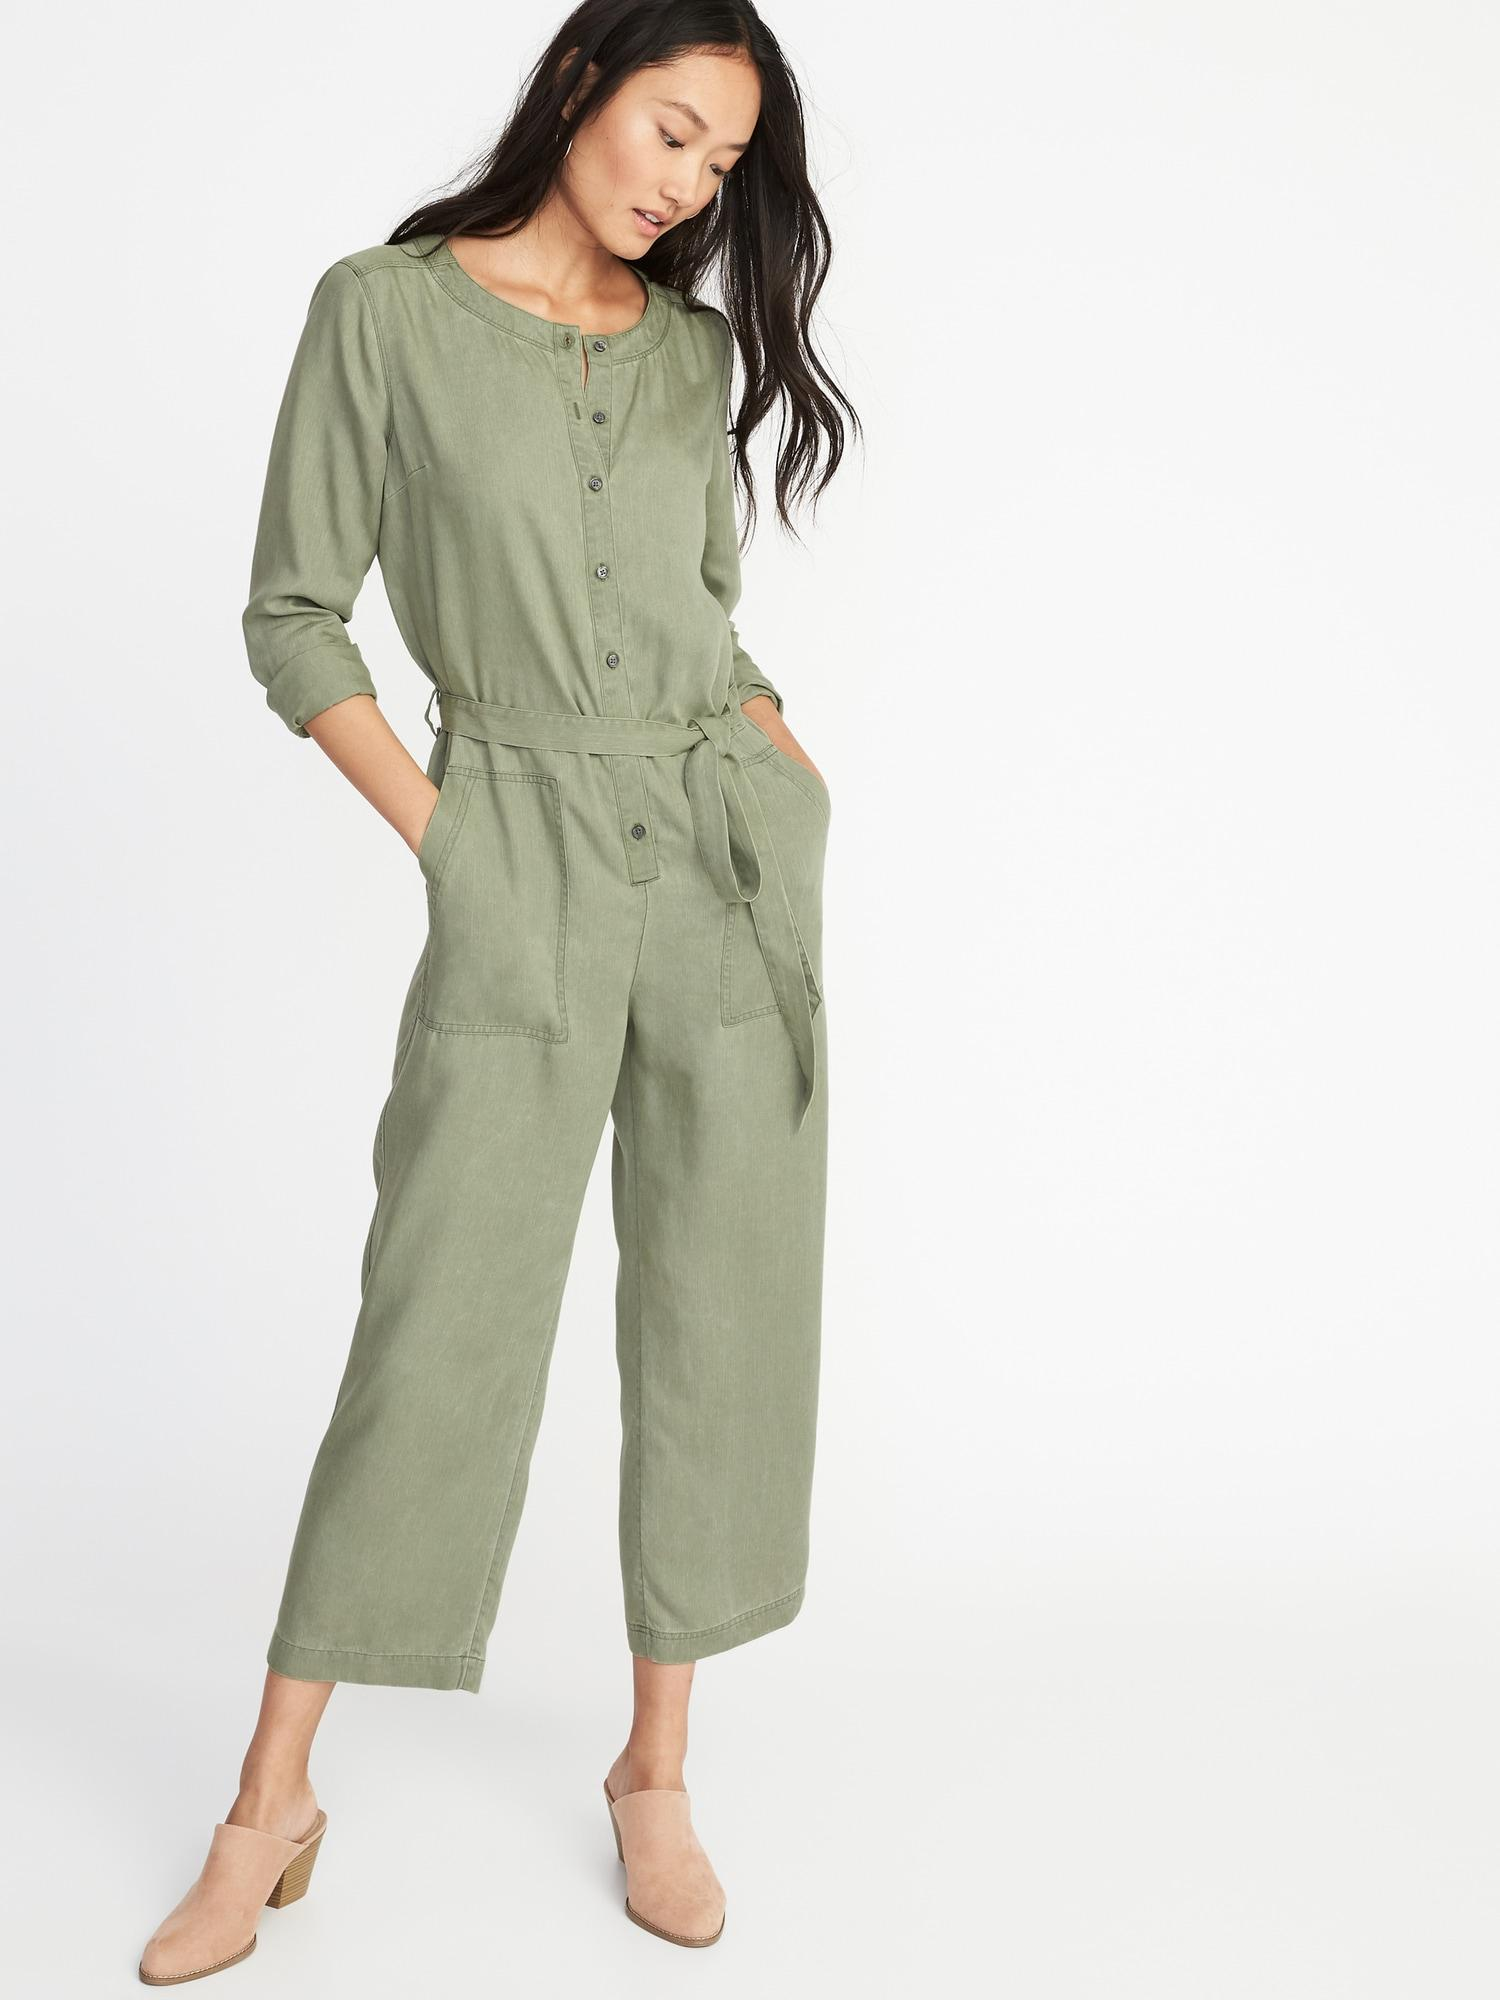 2c9628a2ca1 Lyst - Old Navy Faded-twill Tie-belt Utility Jumpsuit in Green